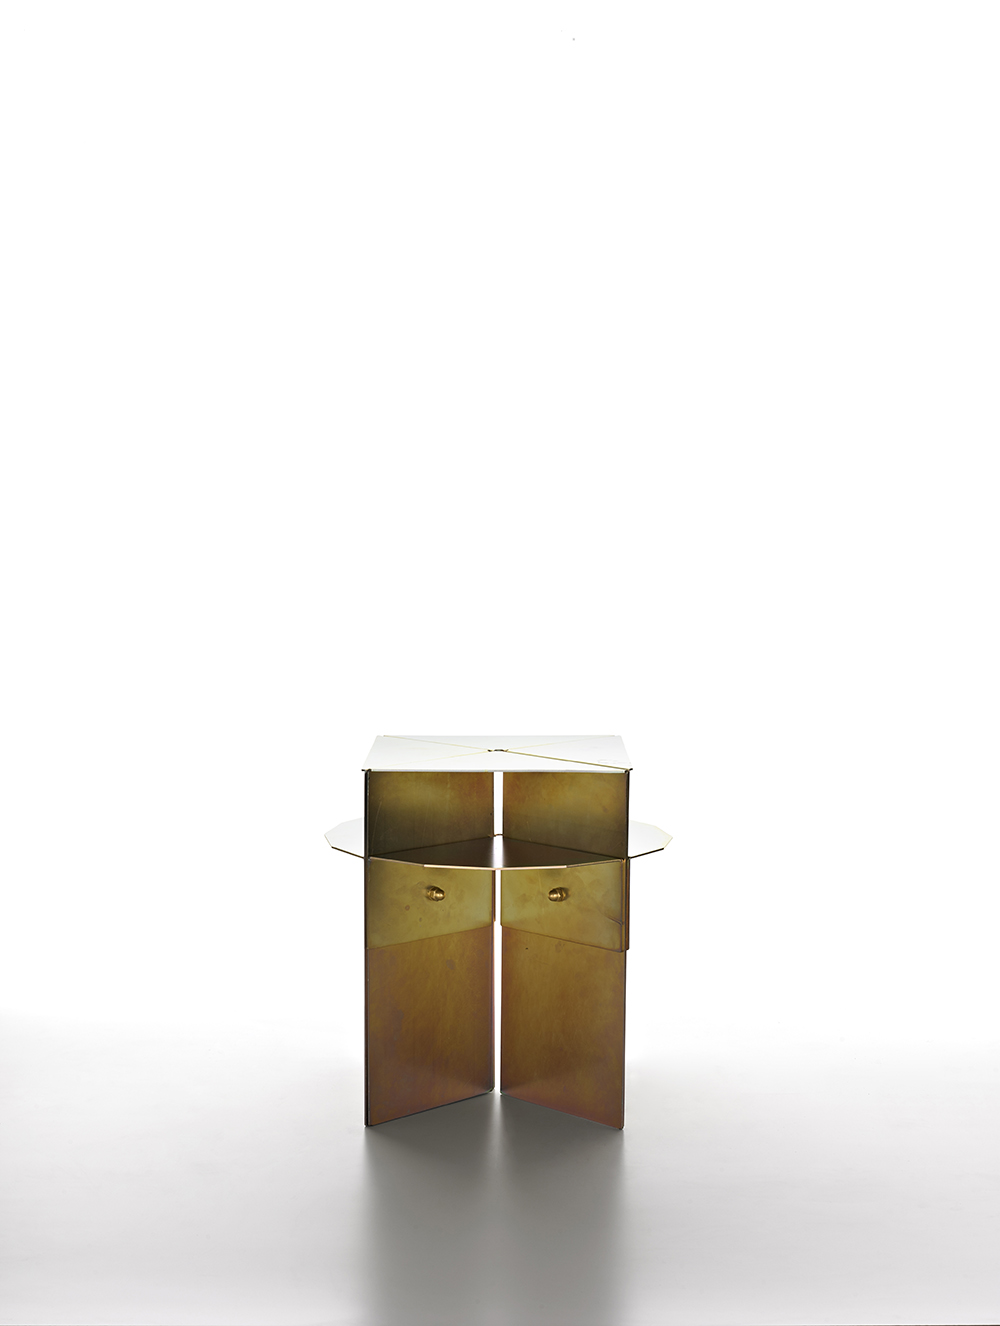 BrooksbankCollins_Carbo Flavus_Side Table_Yellow Passivated_3